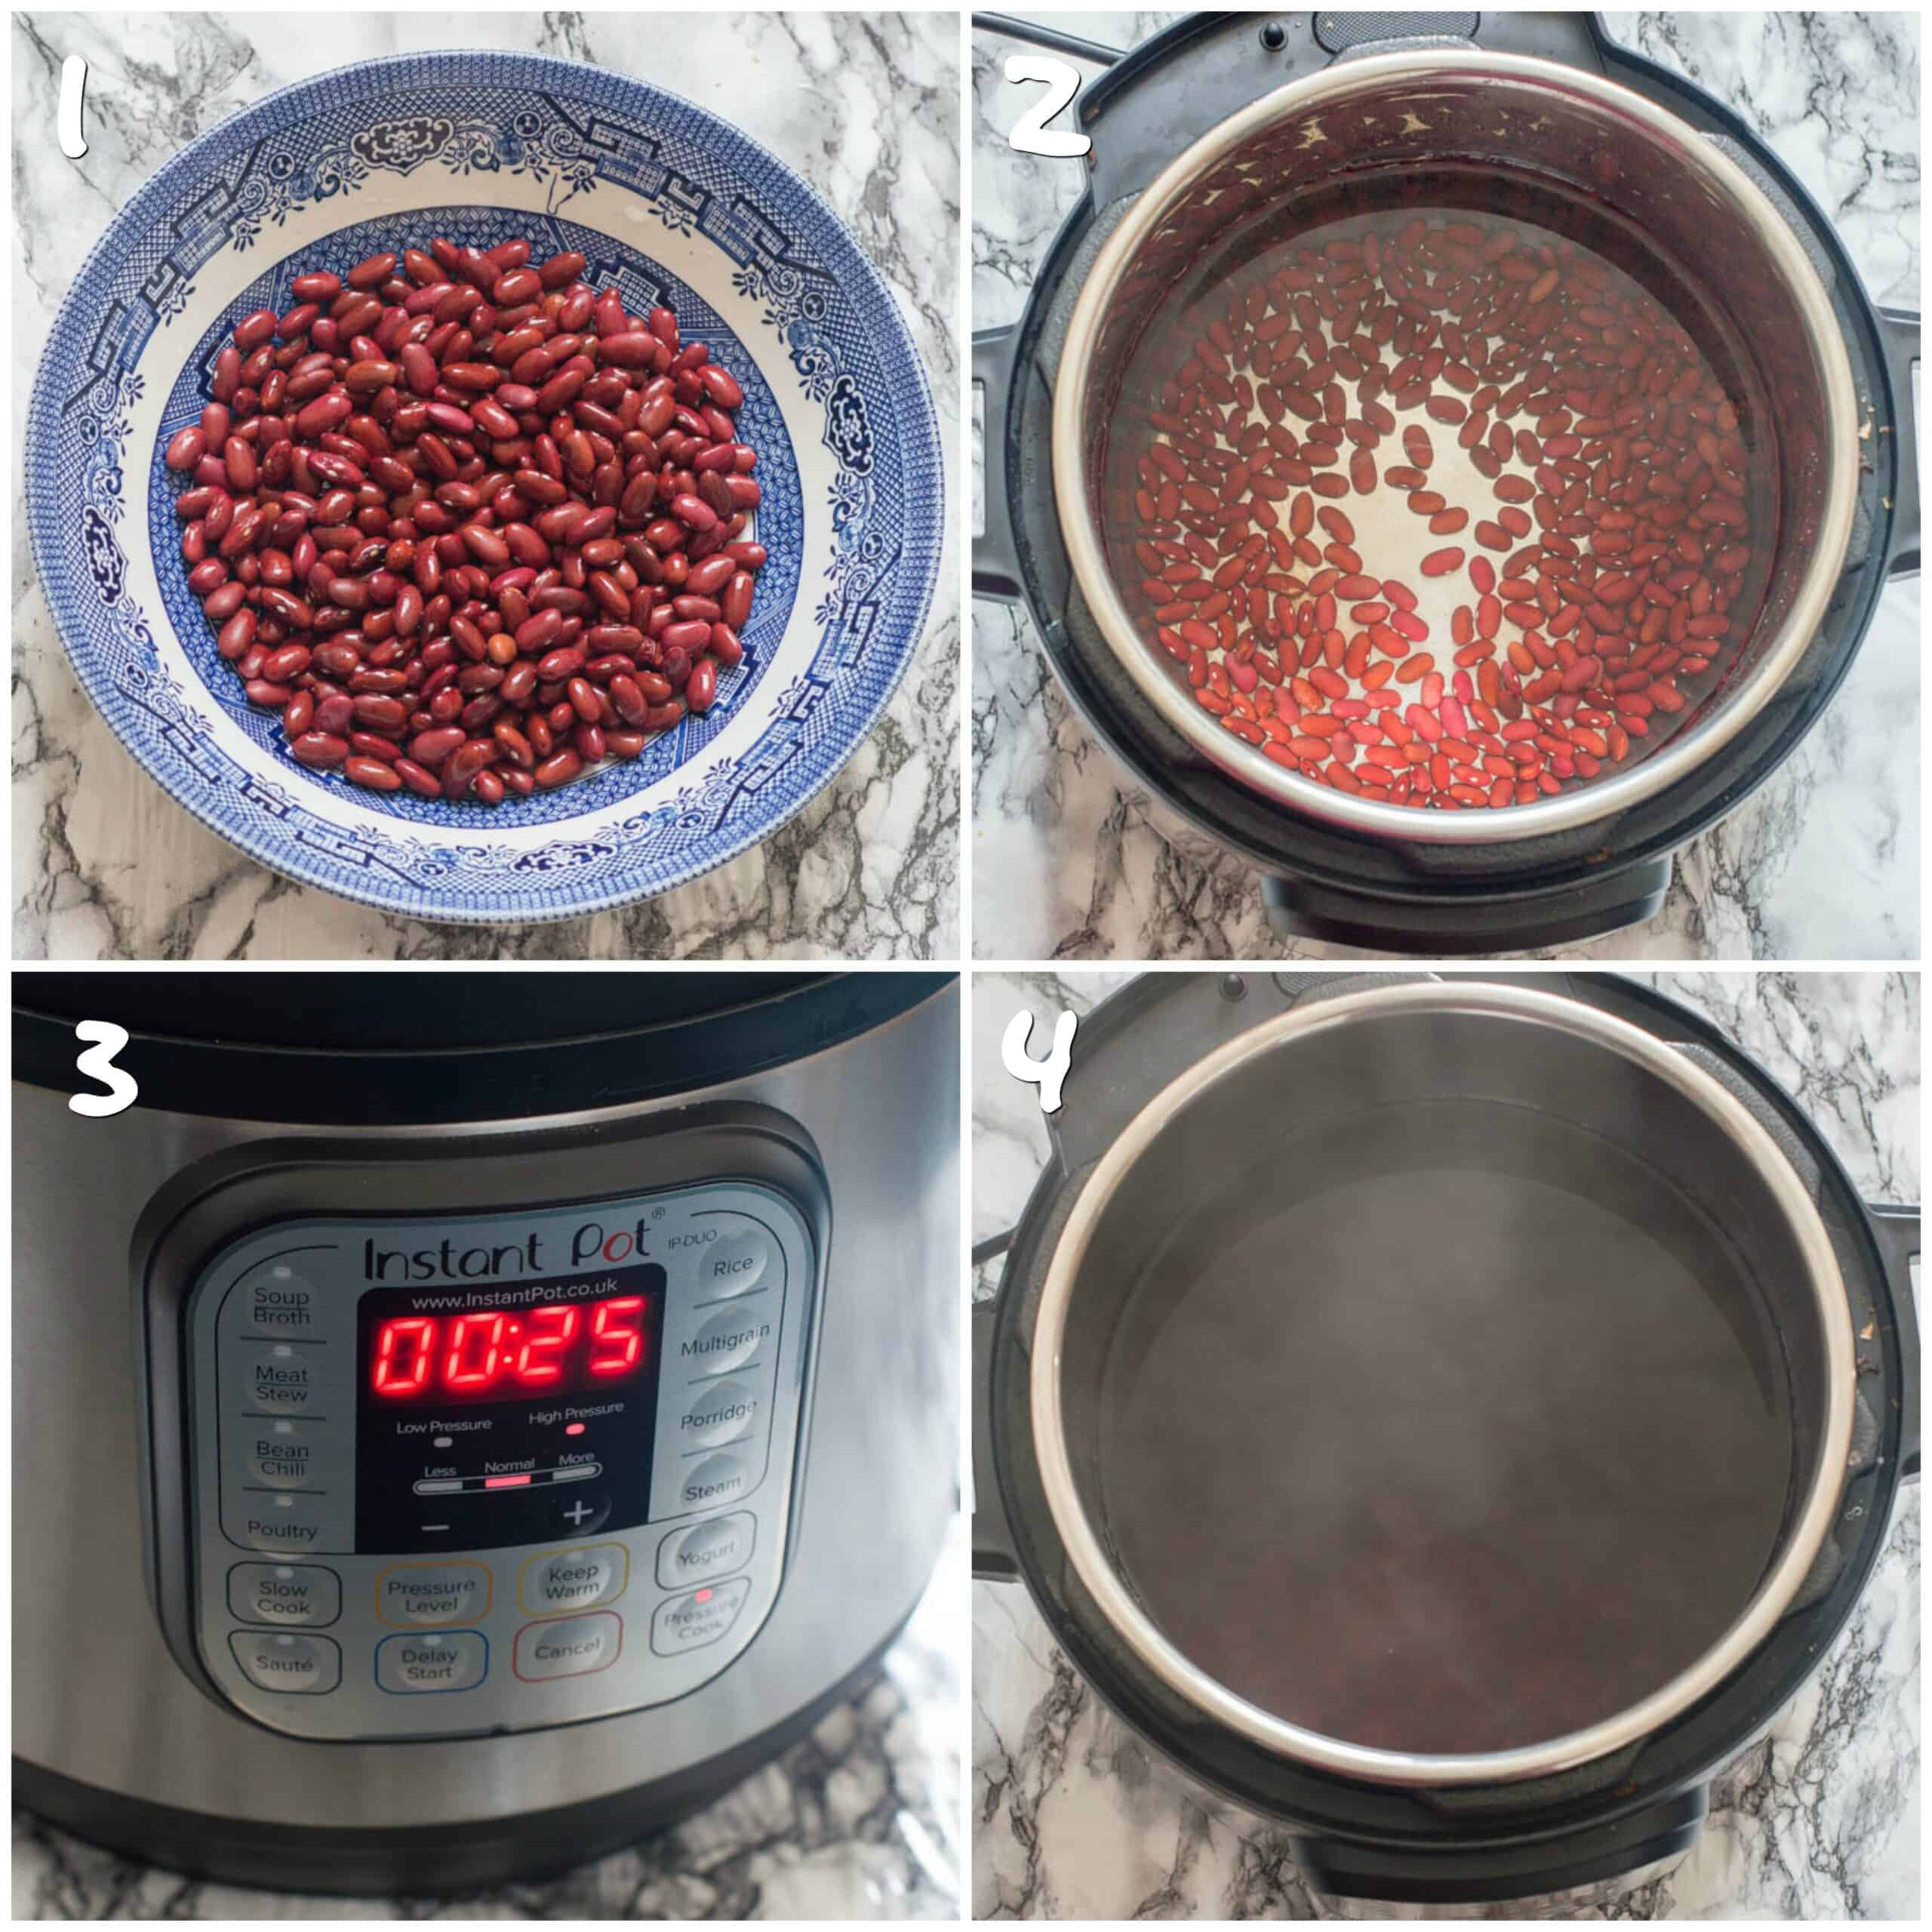 steps for pressure cooking legumes